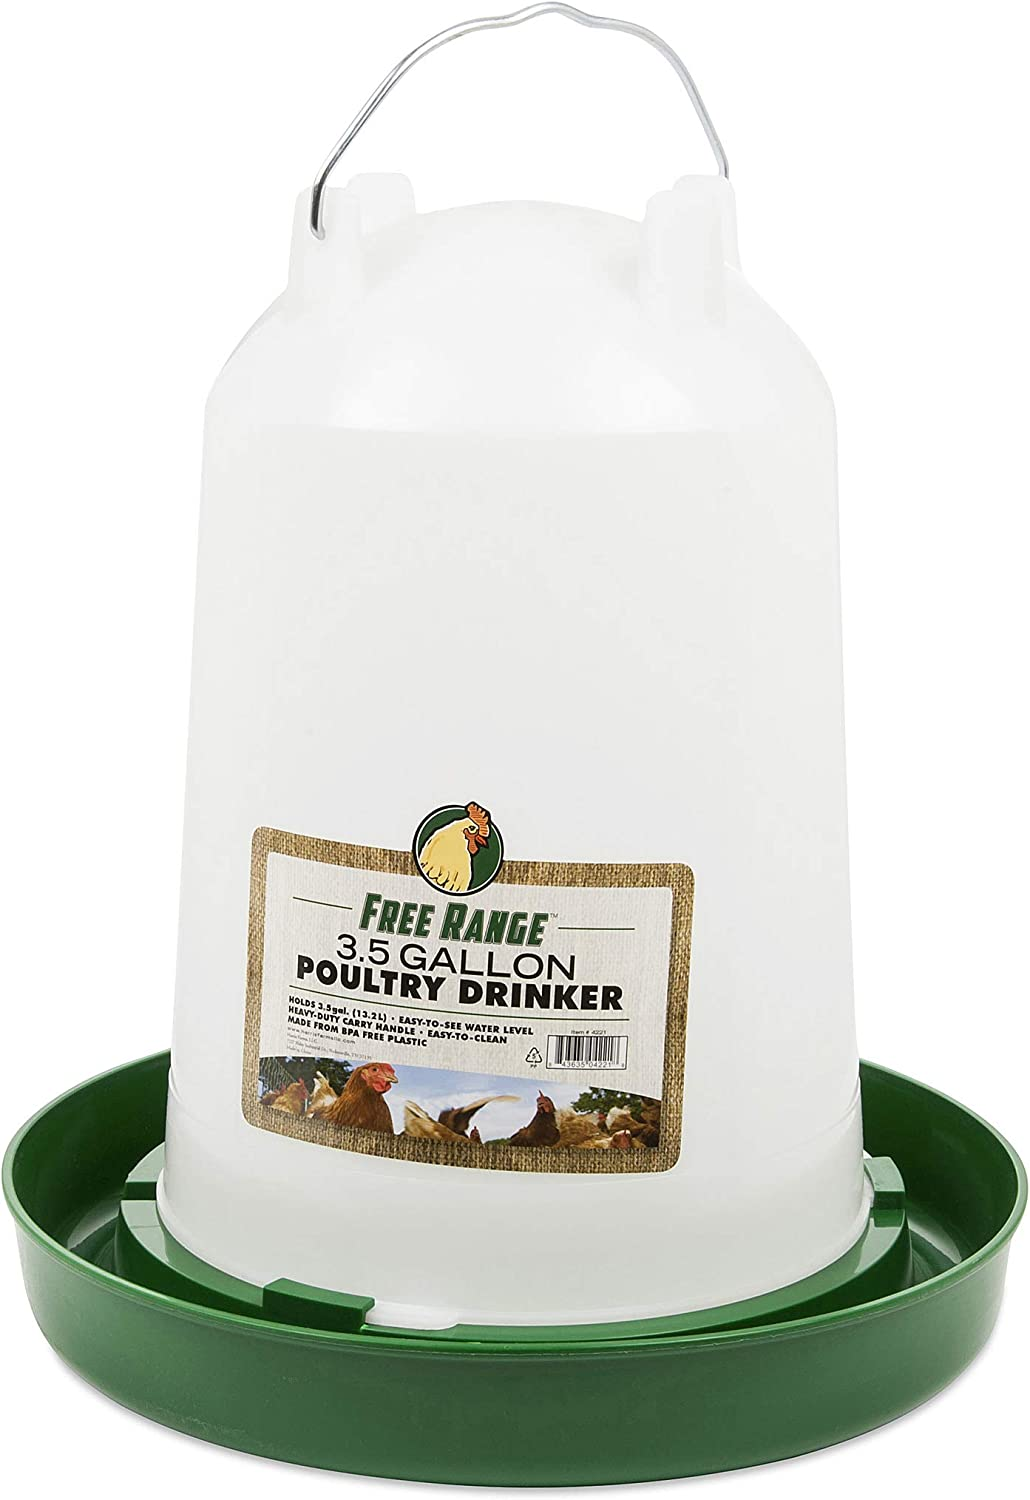 Harris Farms Hanging Poultry 3.5 Drinker Max 75% OFF Free Shipping Cheap Bargain Gift Gallon